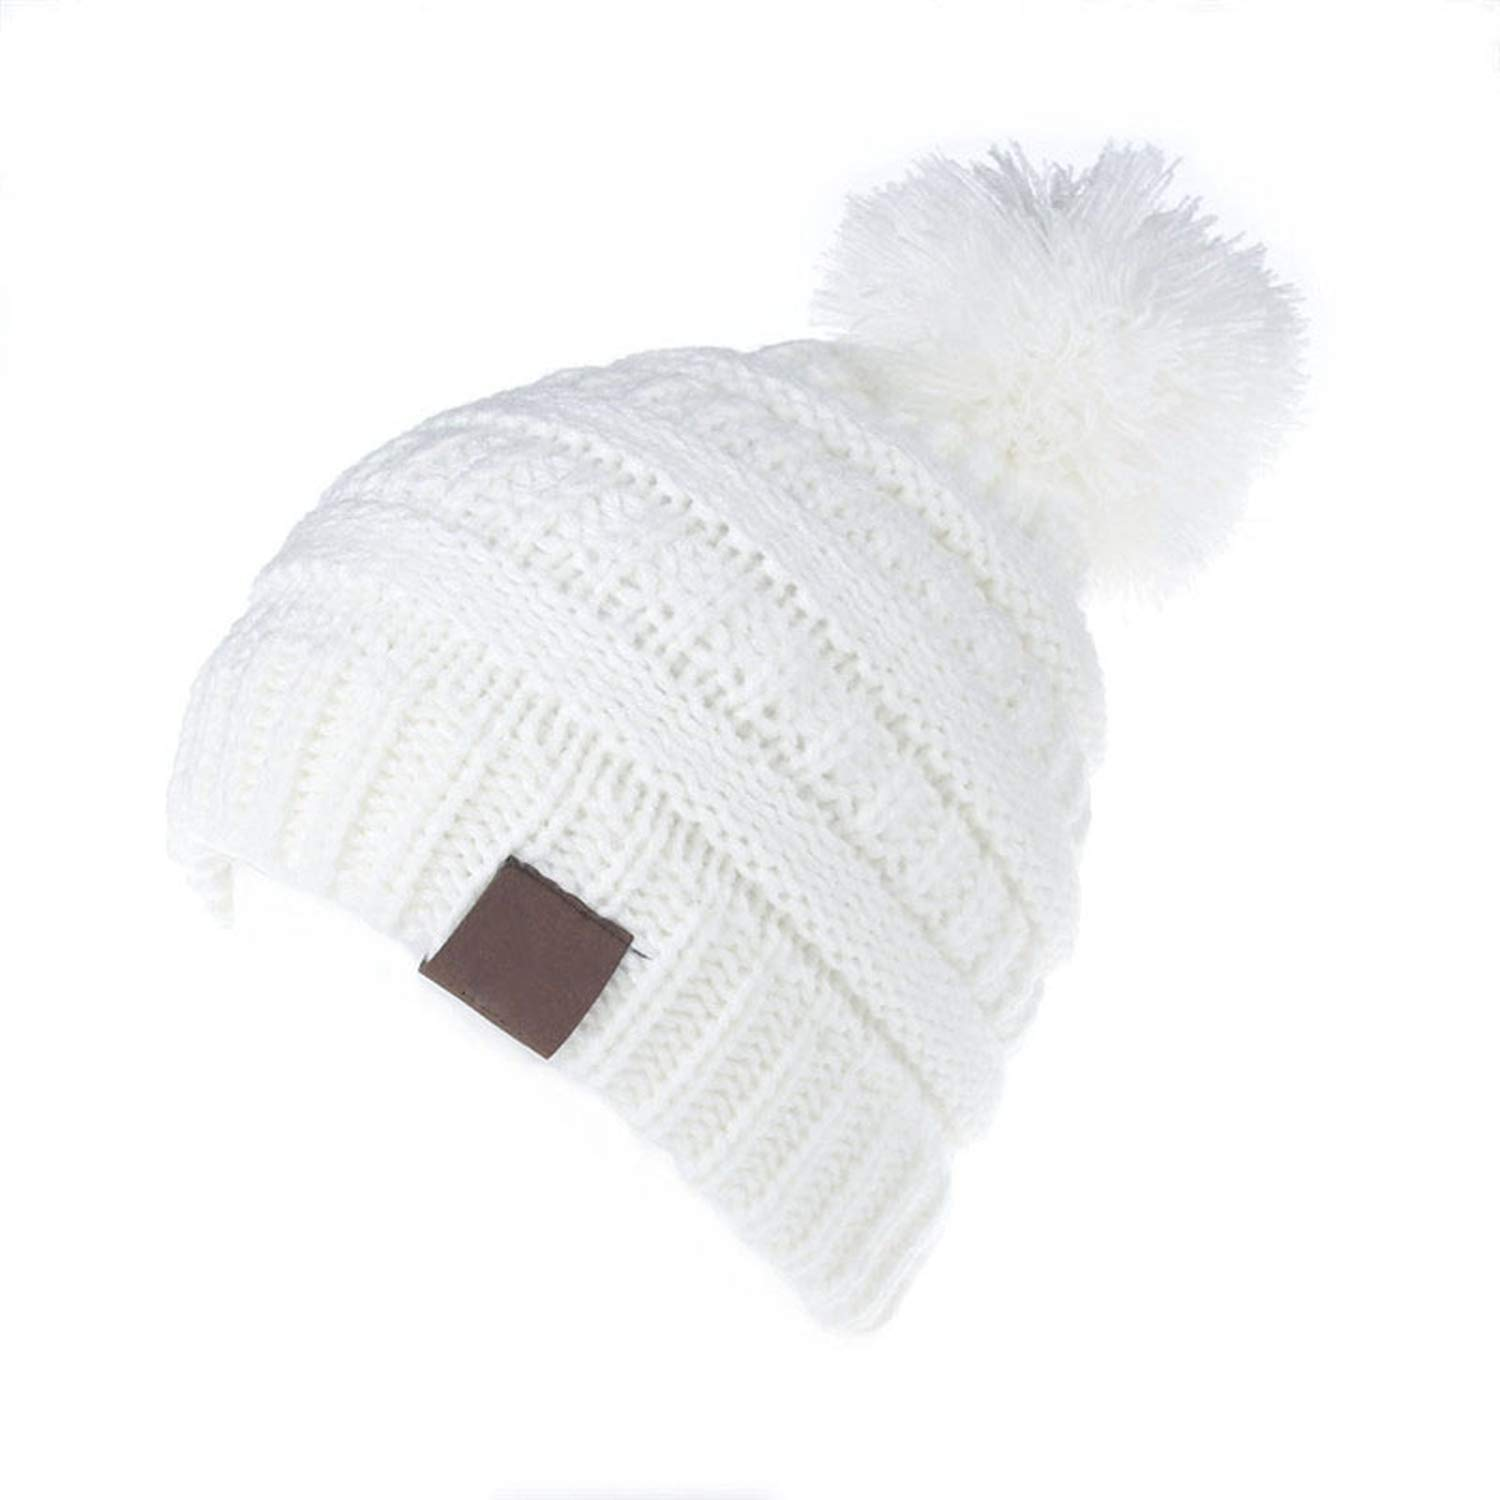 ecc1b96fa32 Amazon.com  HiiWorld 2-6 Years Children Knitted Pom Pom Hat for Boys Girls  Kids Winter Caps Wool Warm Pompom Beanie Hats Beige  Clothing